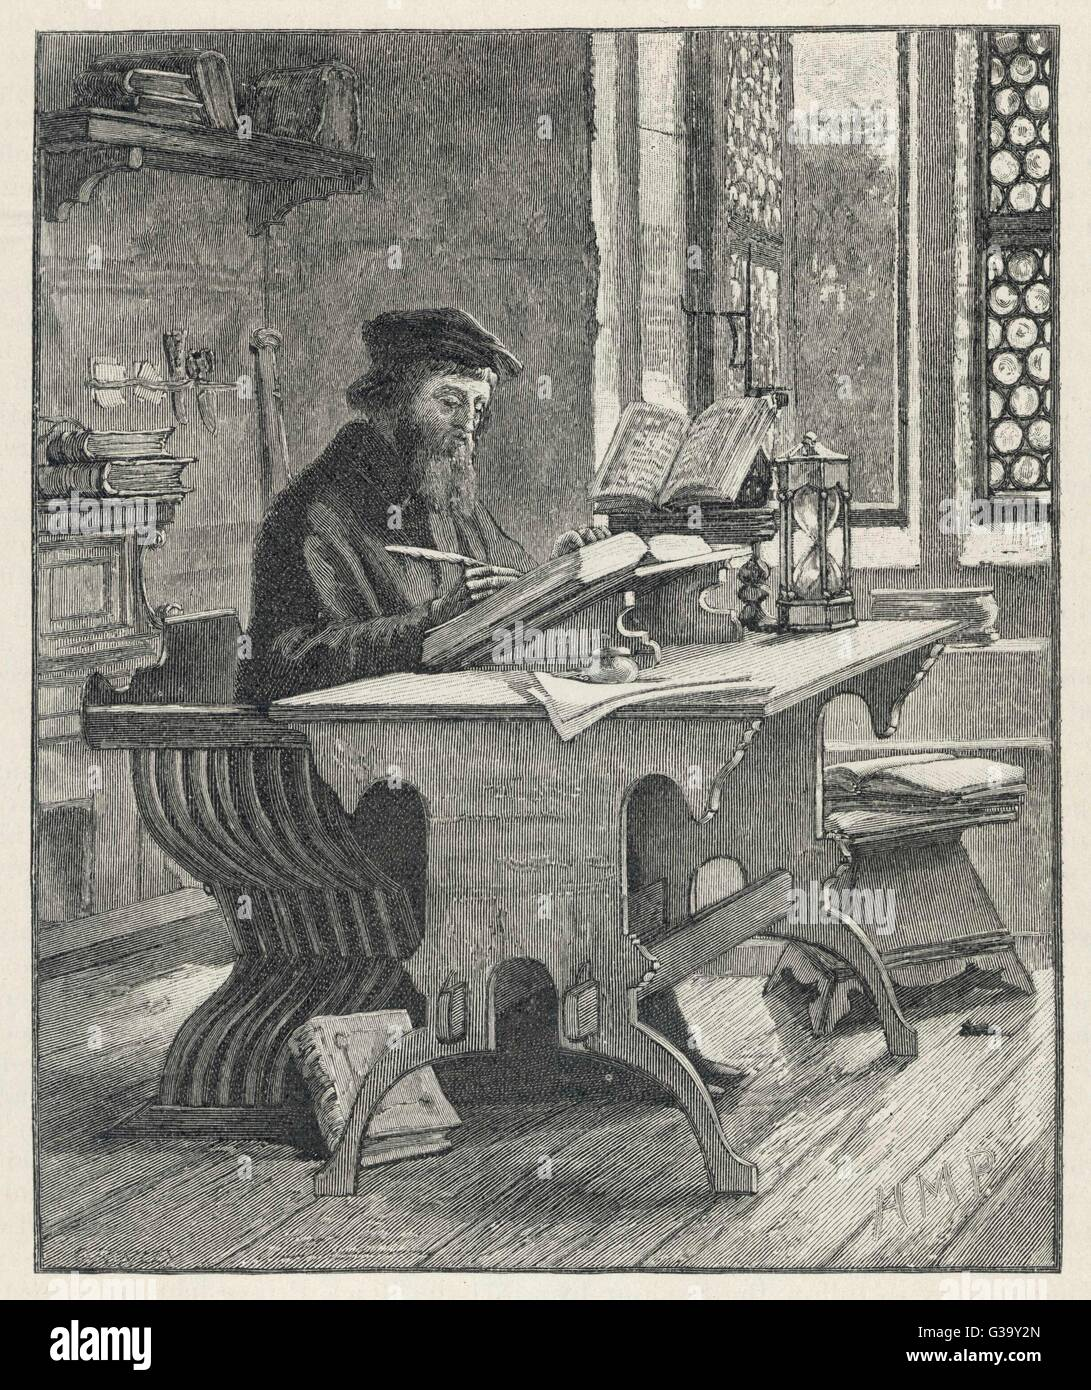 JOHN WYCLIF  religious reformer, depicted writing       Date: 1324 - 1384 - Stock Image